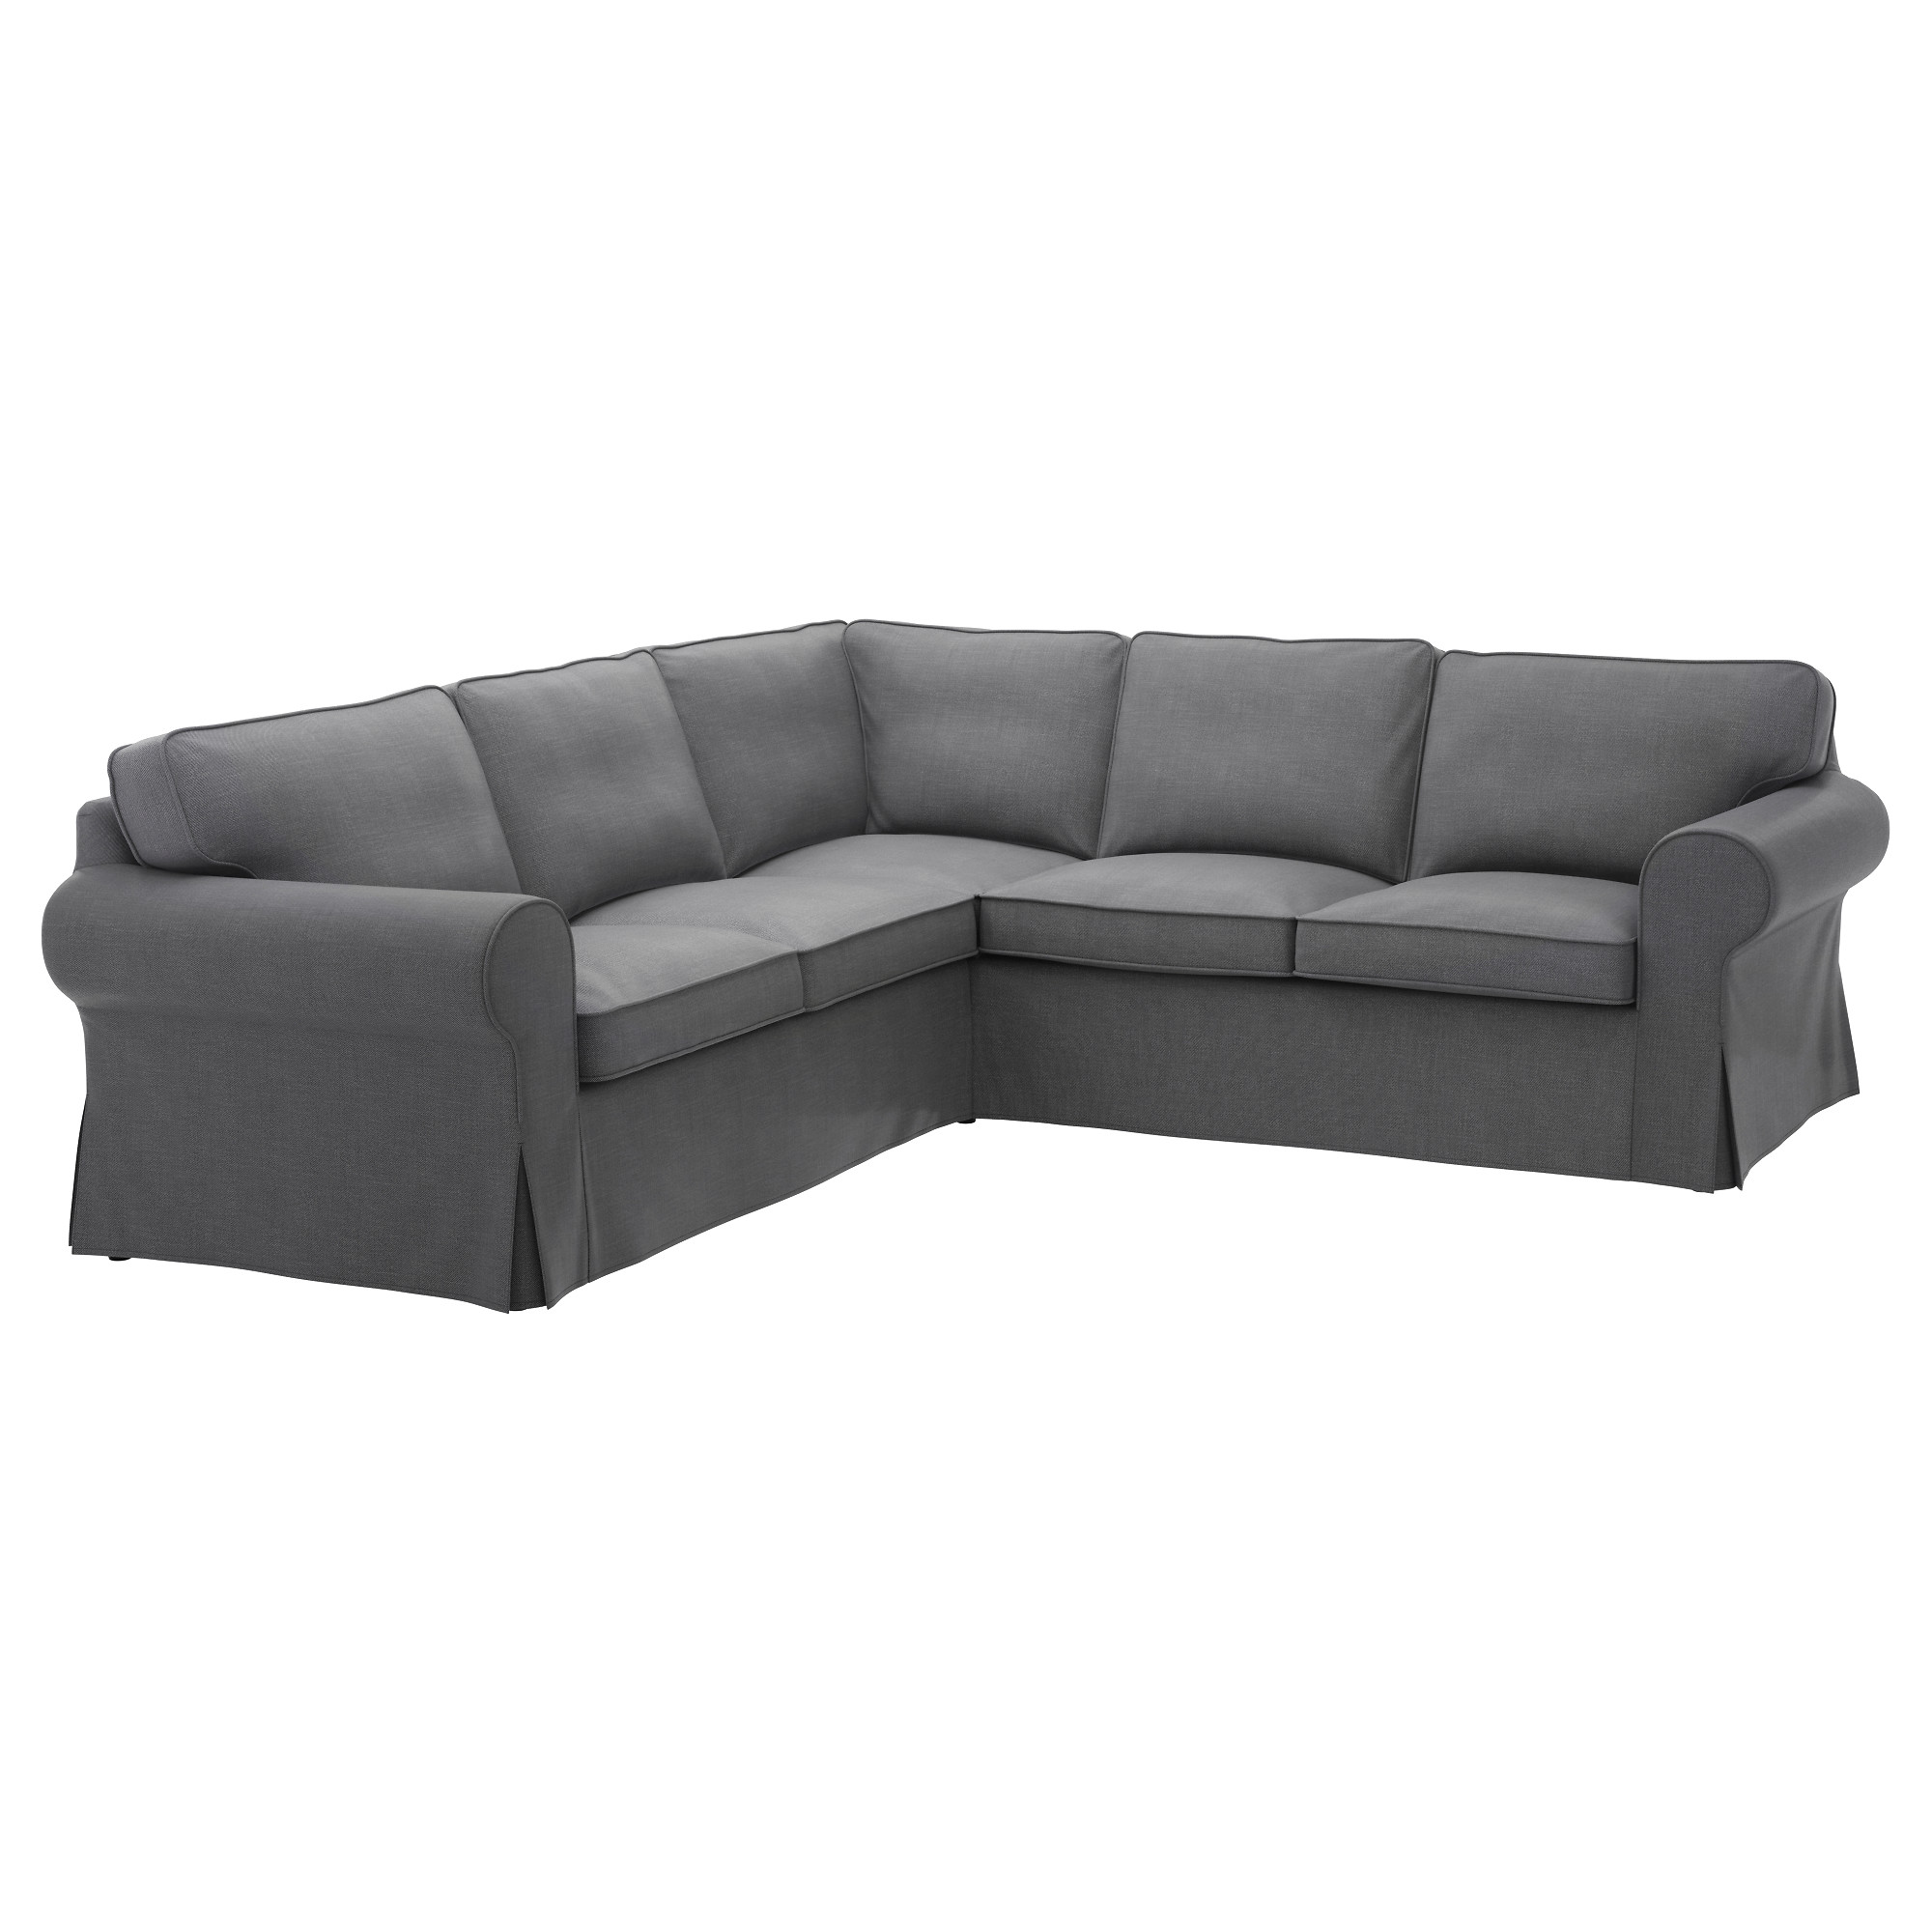 Luxury Corner Sectional Sofa 50 For Living Room Sofa Ideas with